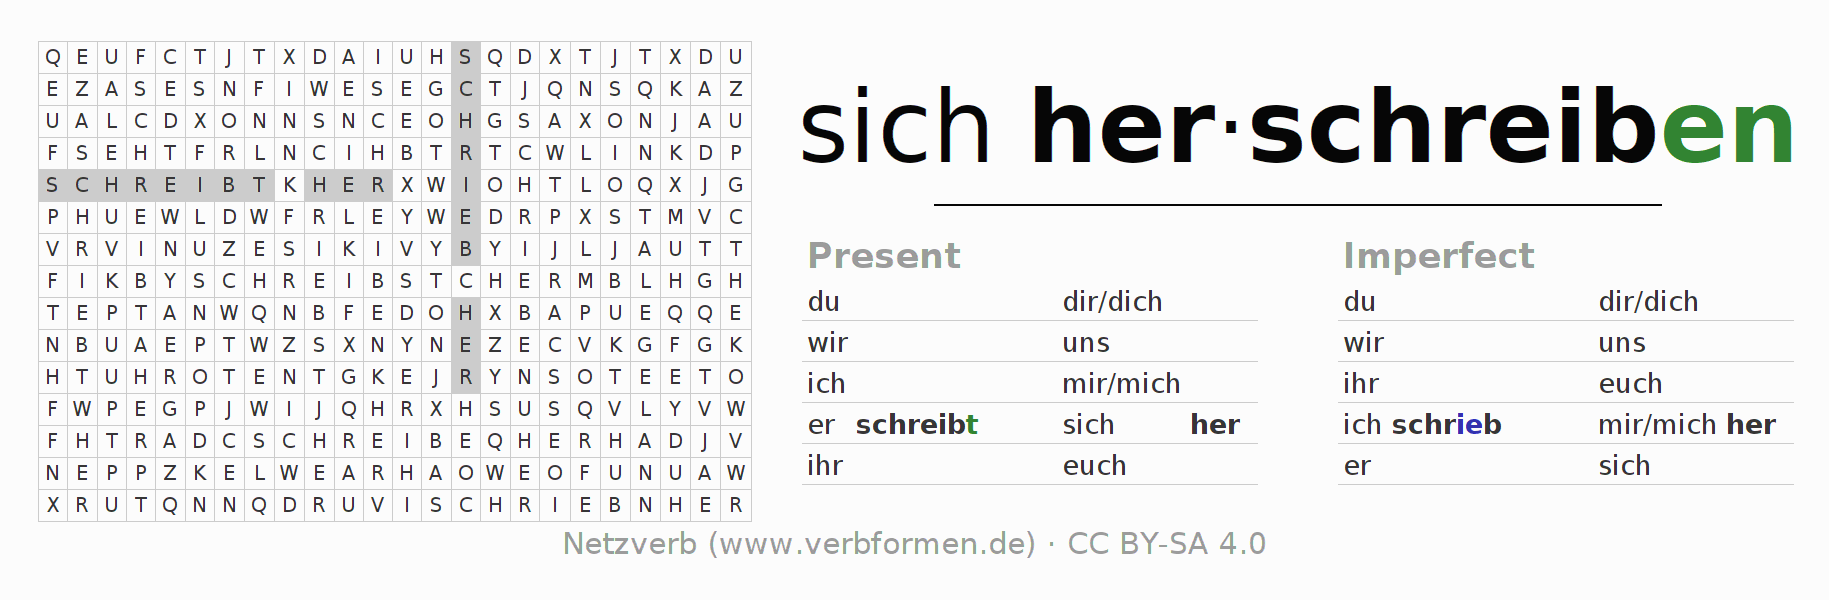 Word search puzzle for the conjugation of the verb sich herschreiben